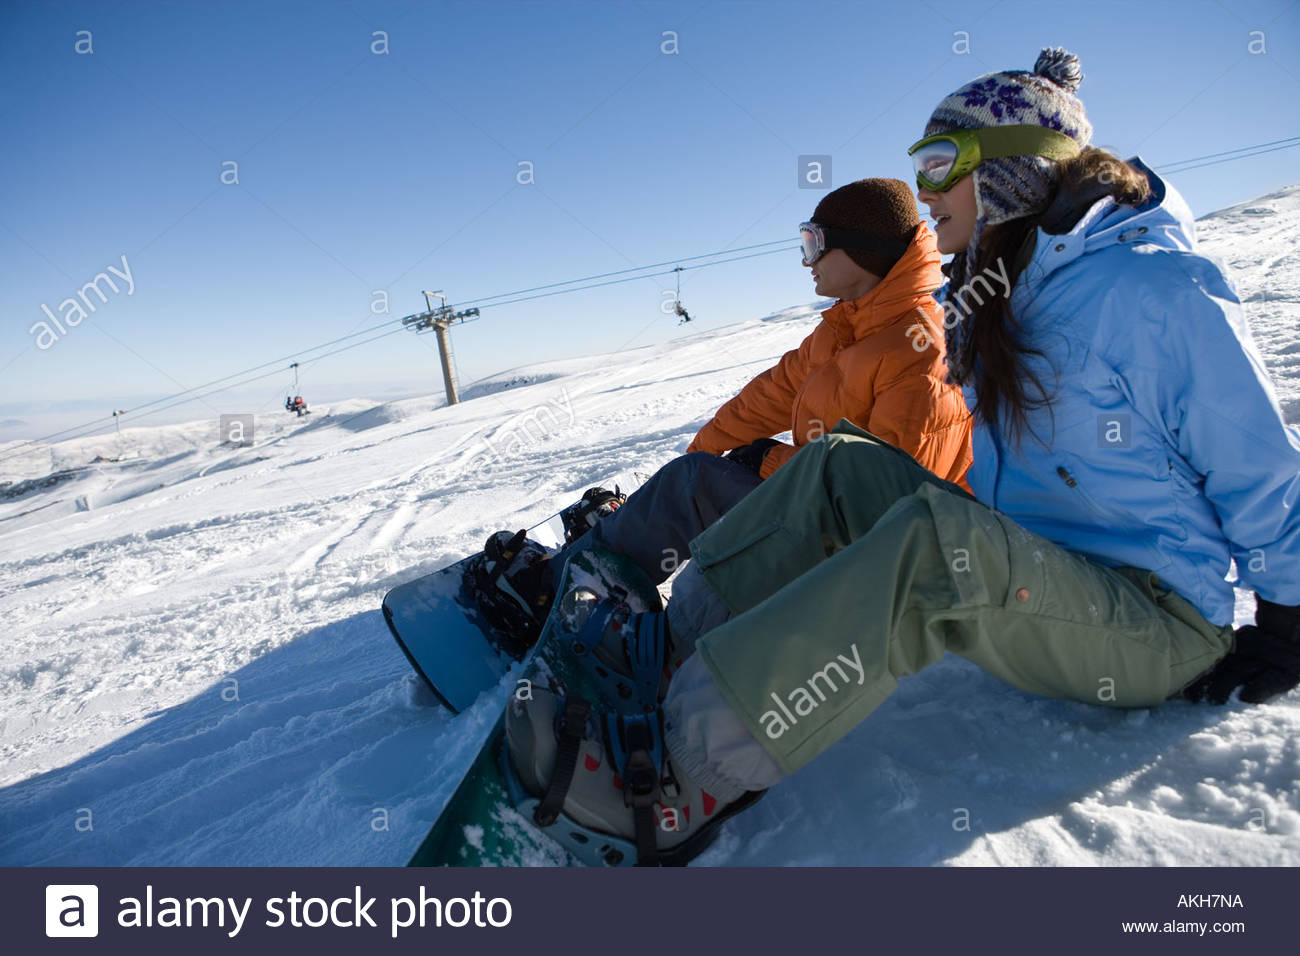 Snowboarders sitting on slope Stock Photo